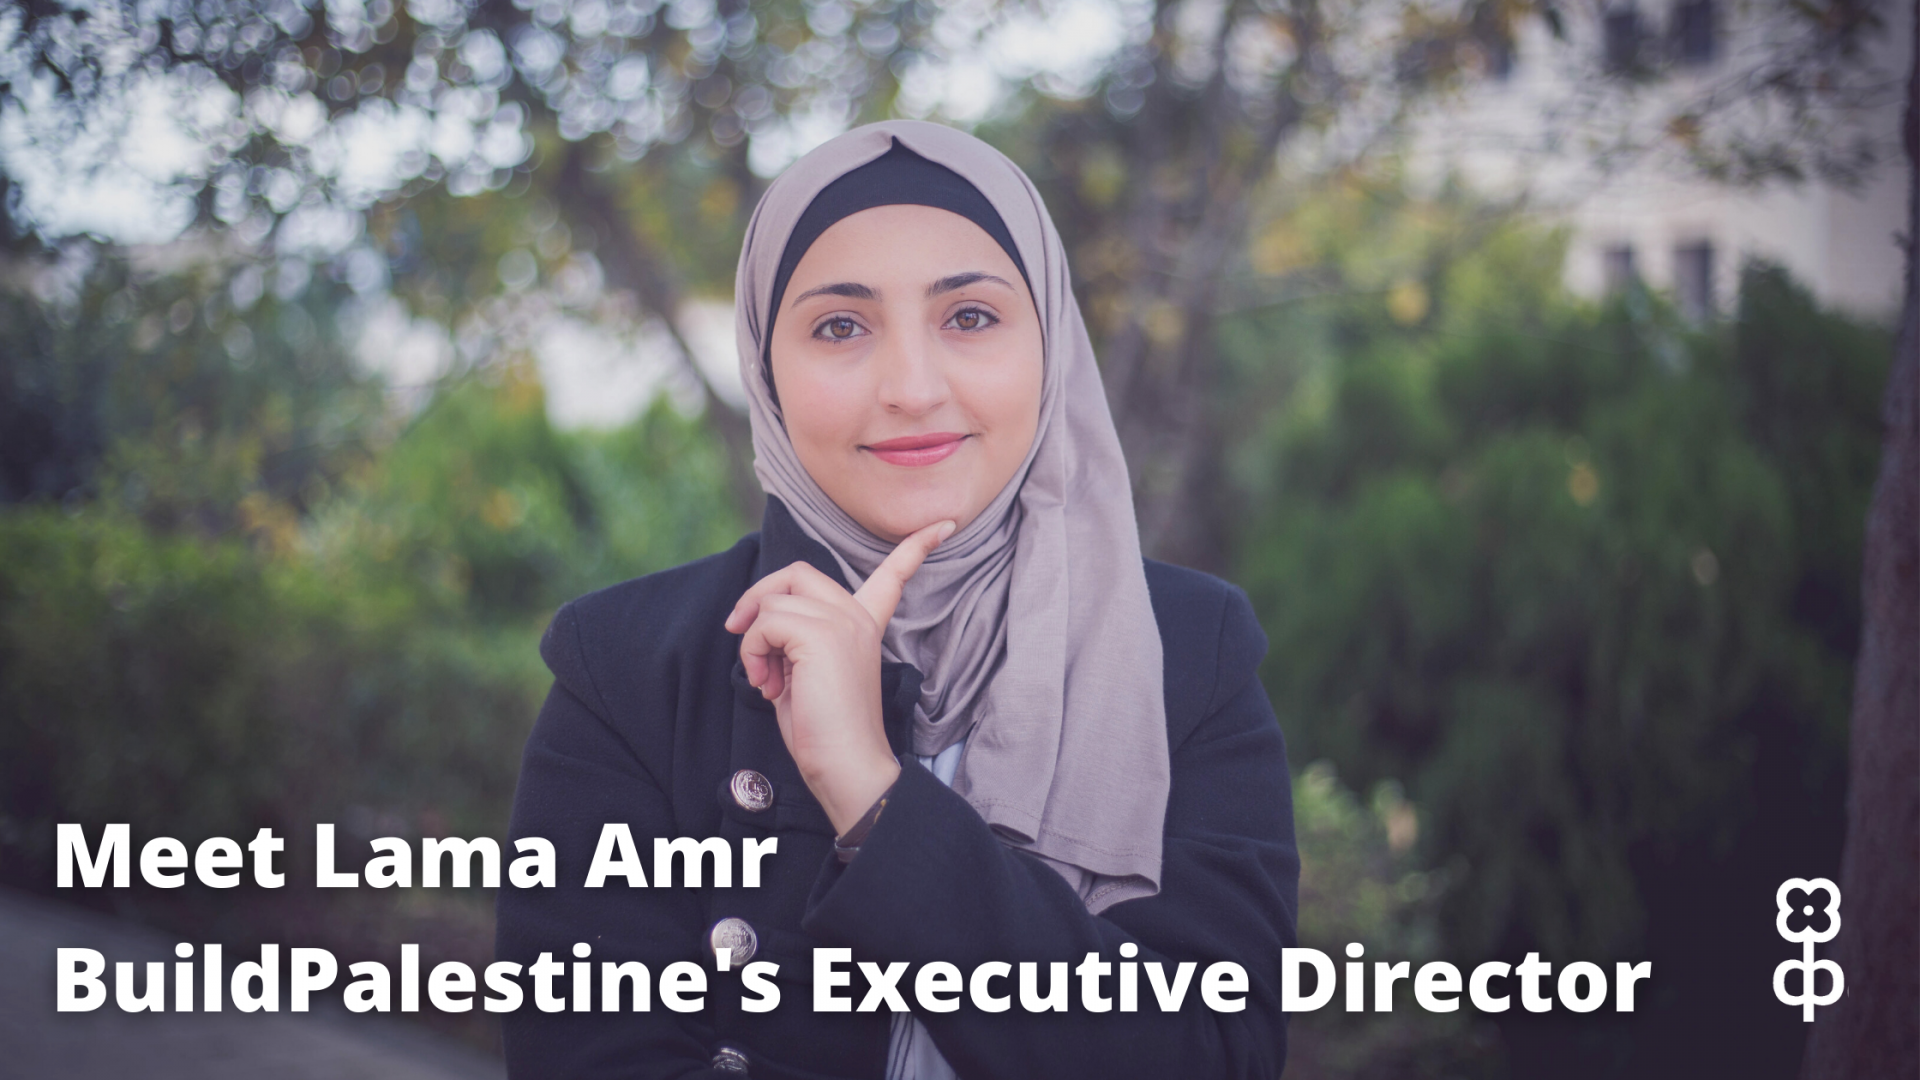 Meet Lama Amr, BuildPalestine's Executive Director